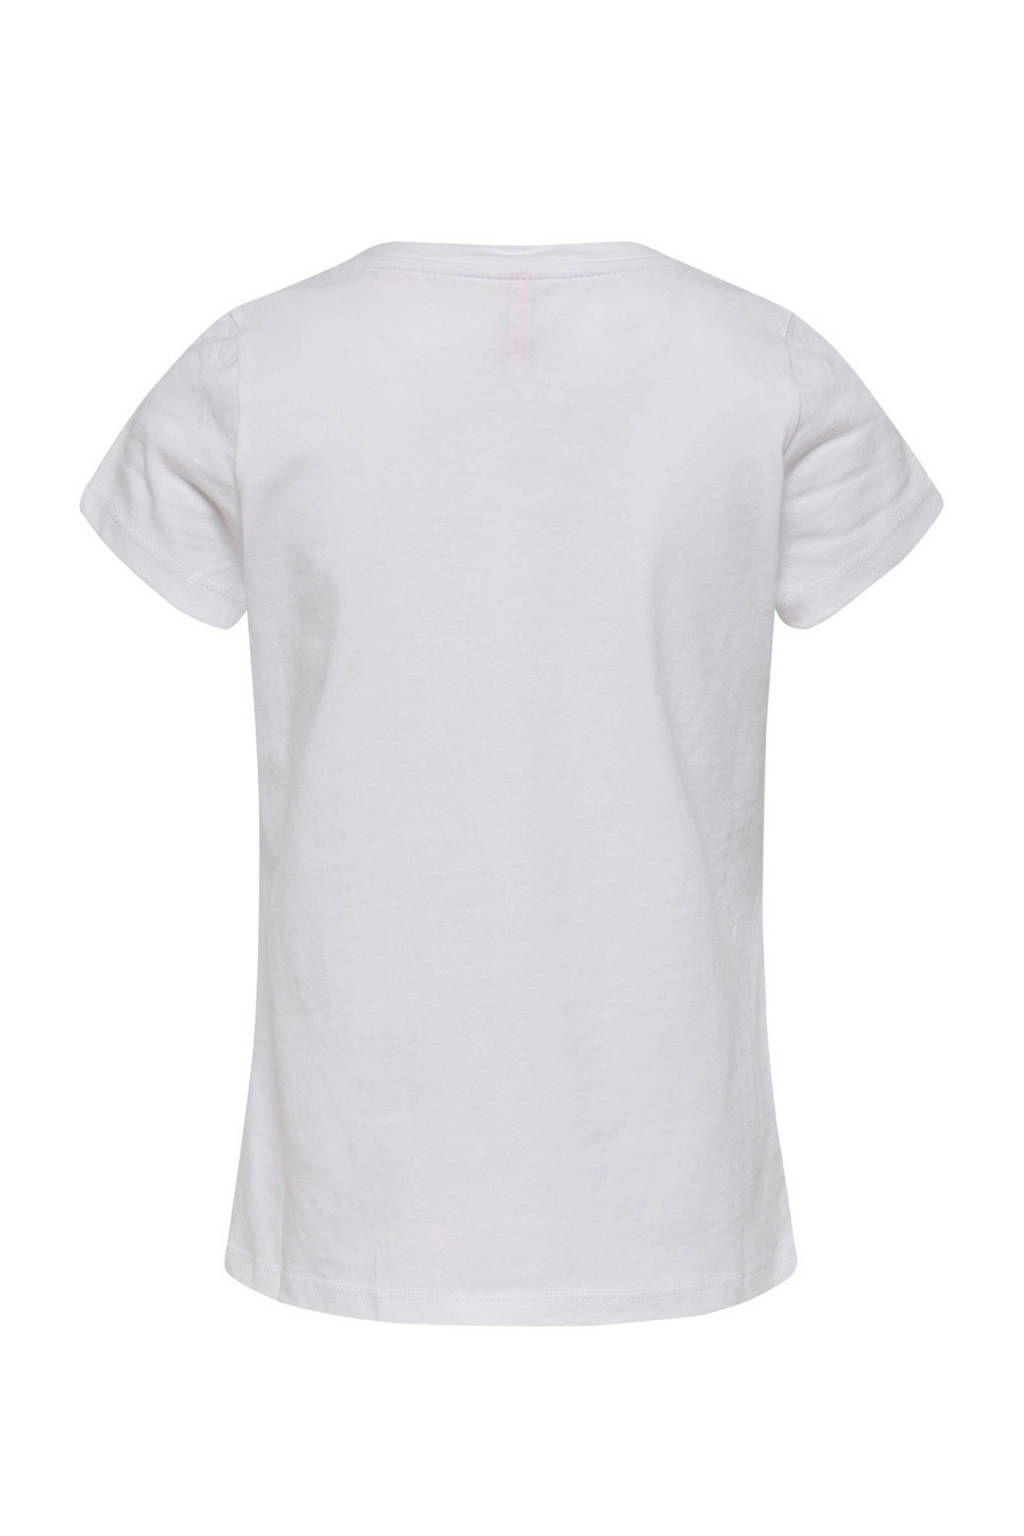 KIDS ONLY T-shirt Moods wit, Bright White